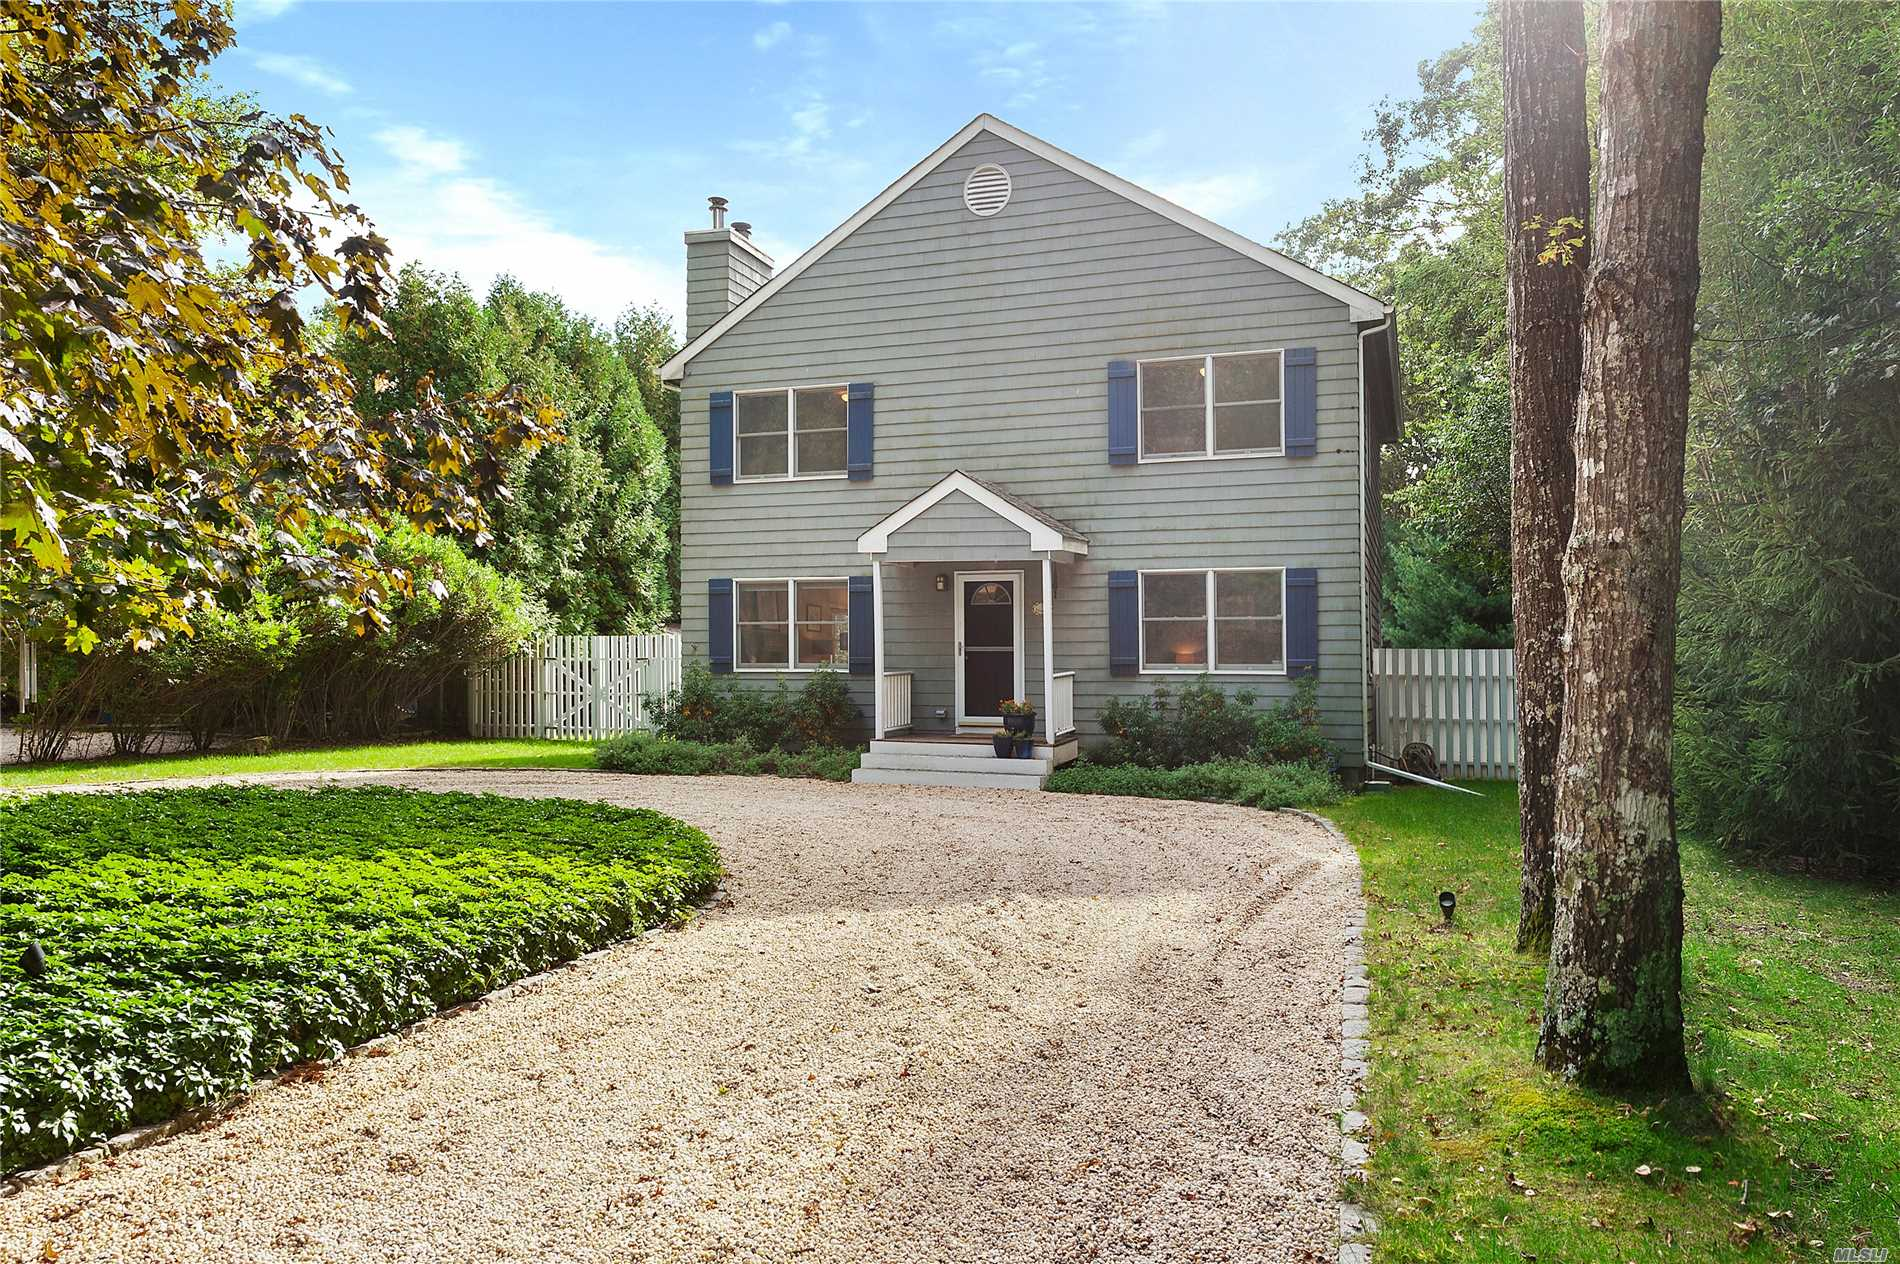 Photo of home for sale at 71 Sycamore Dr, East Hampton NY